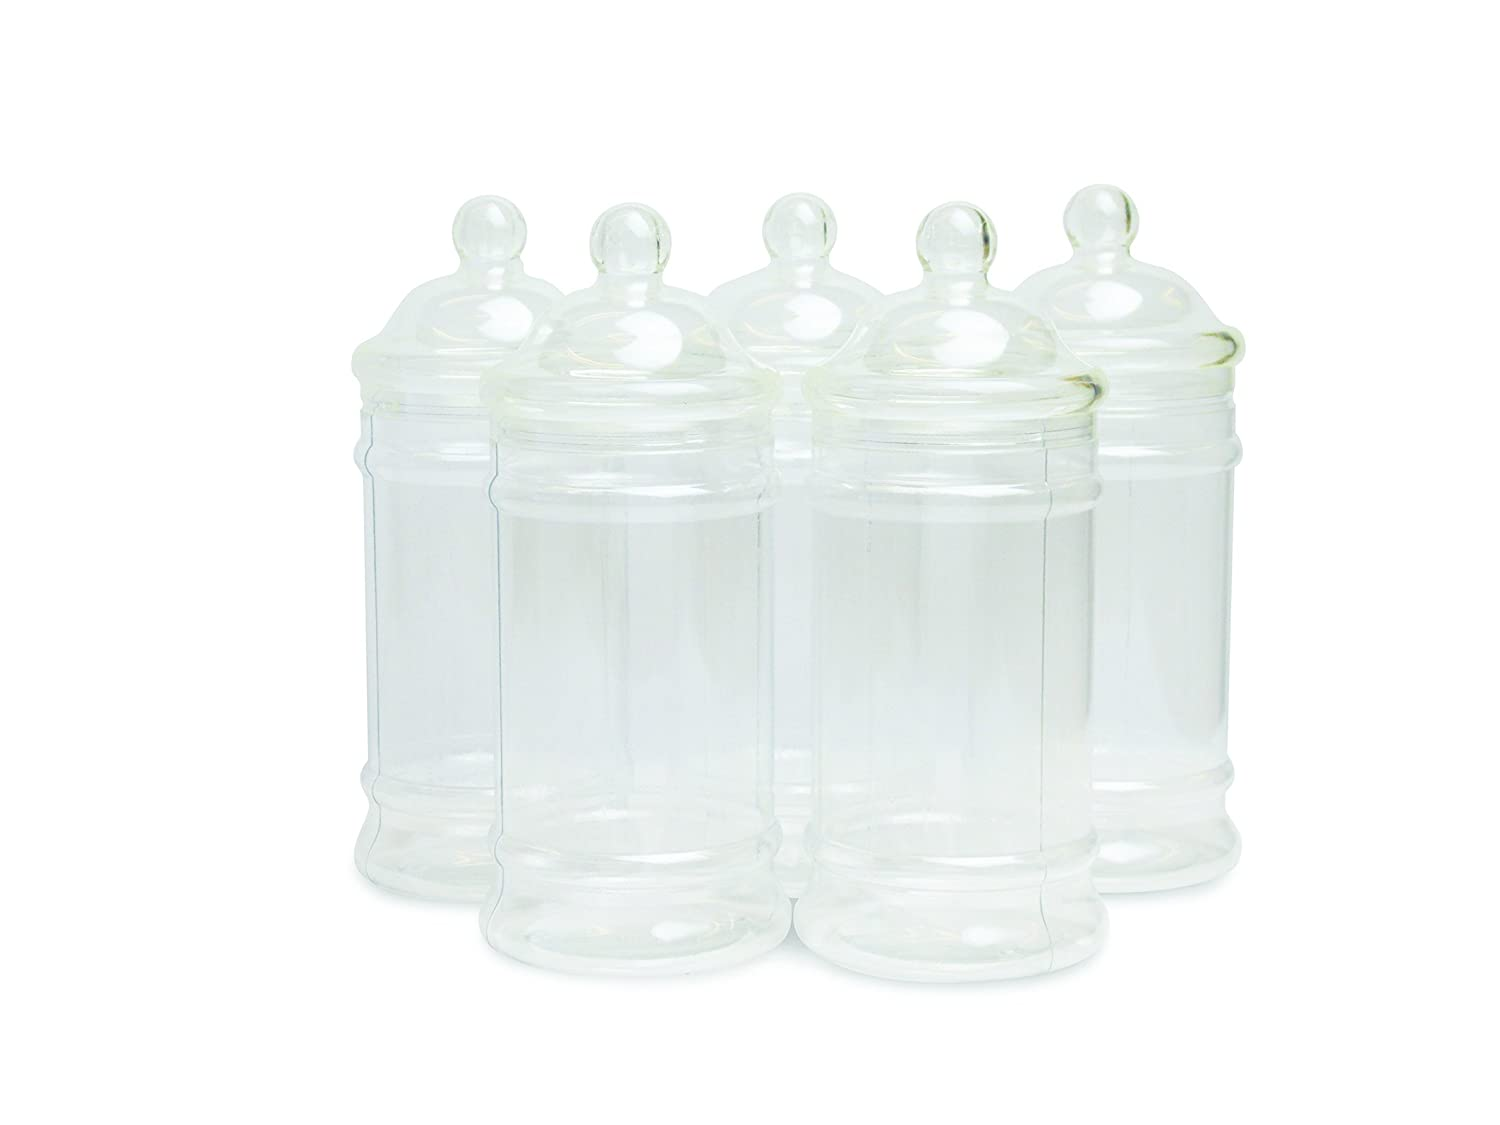 5x Boutique Sweet Jars with Lids, Plastic Victorian, Retro Jar by Oipps NBM